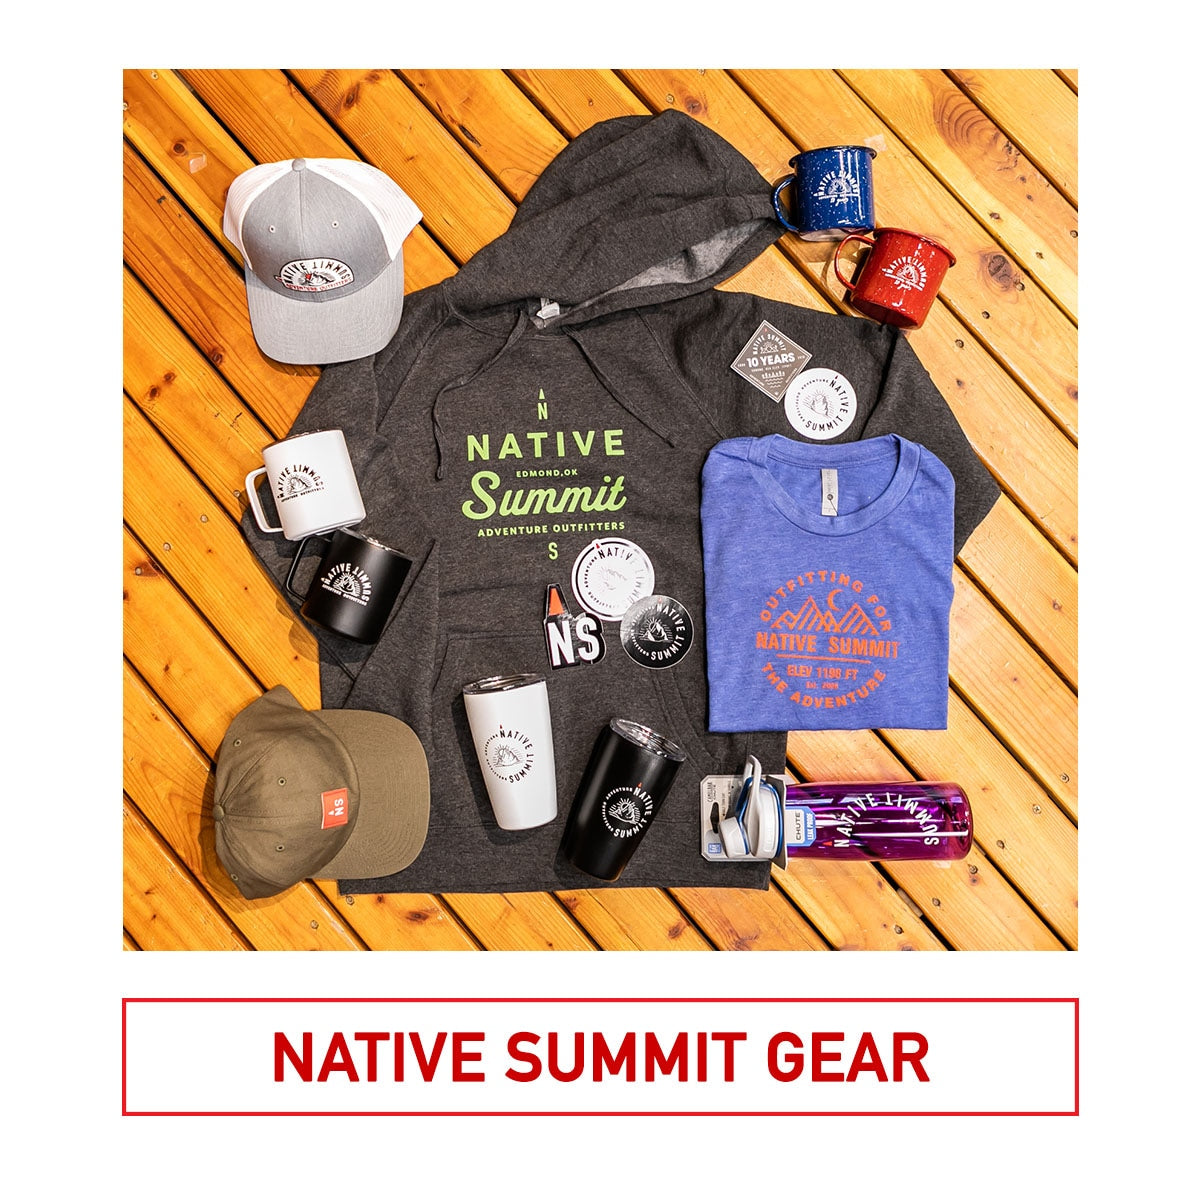 Native Summit Gear